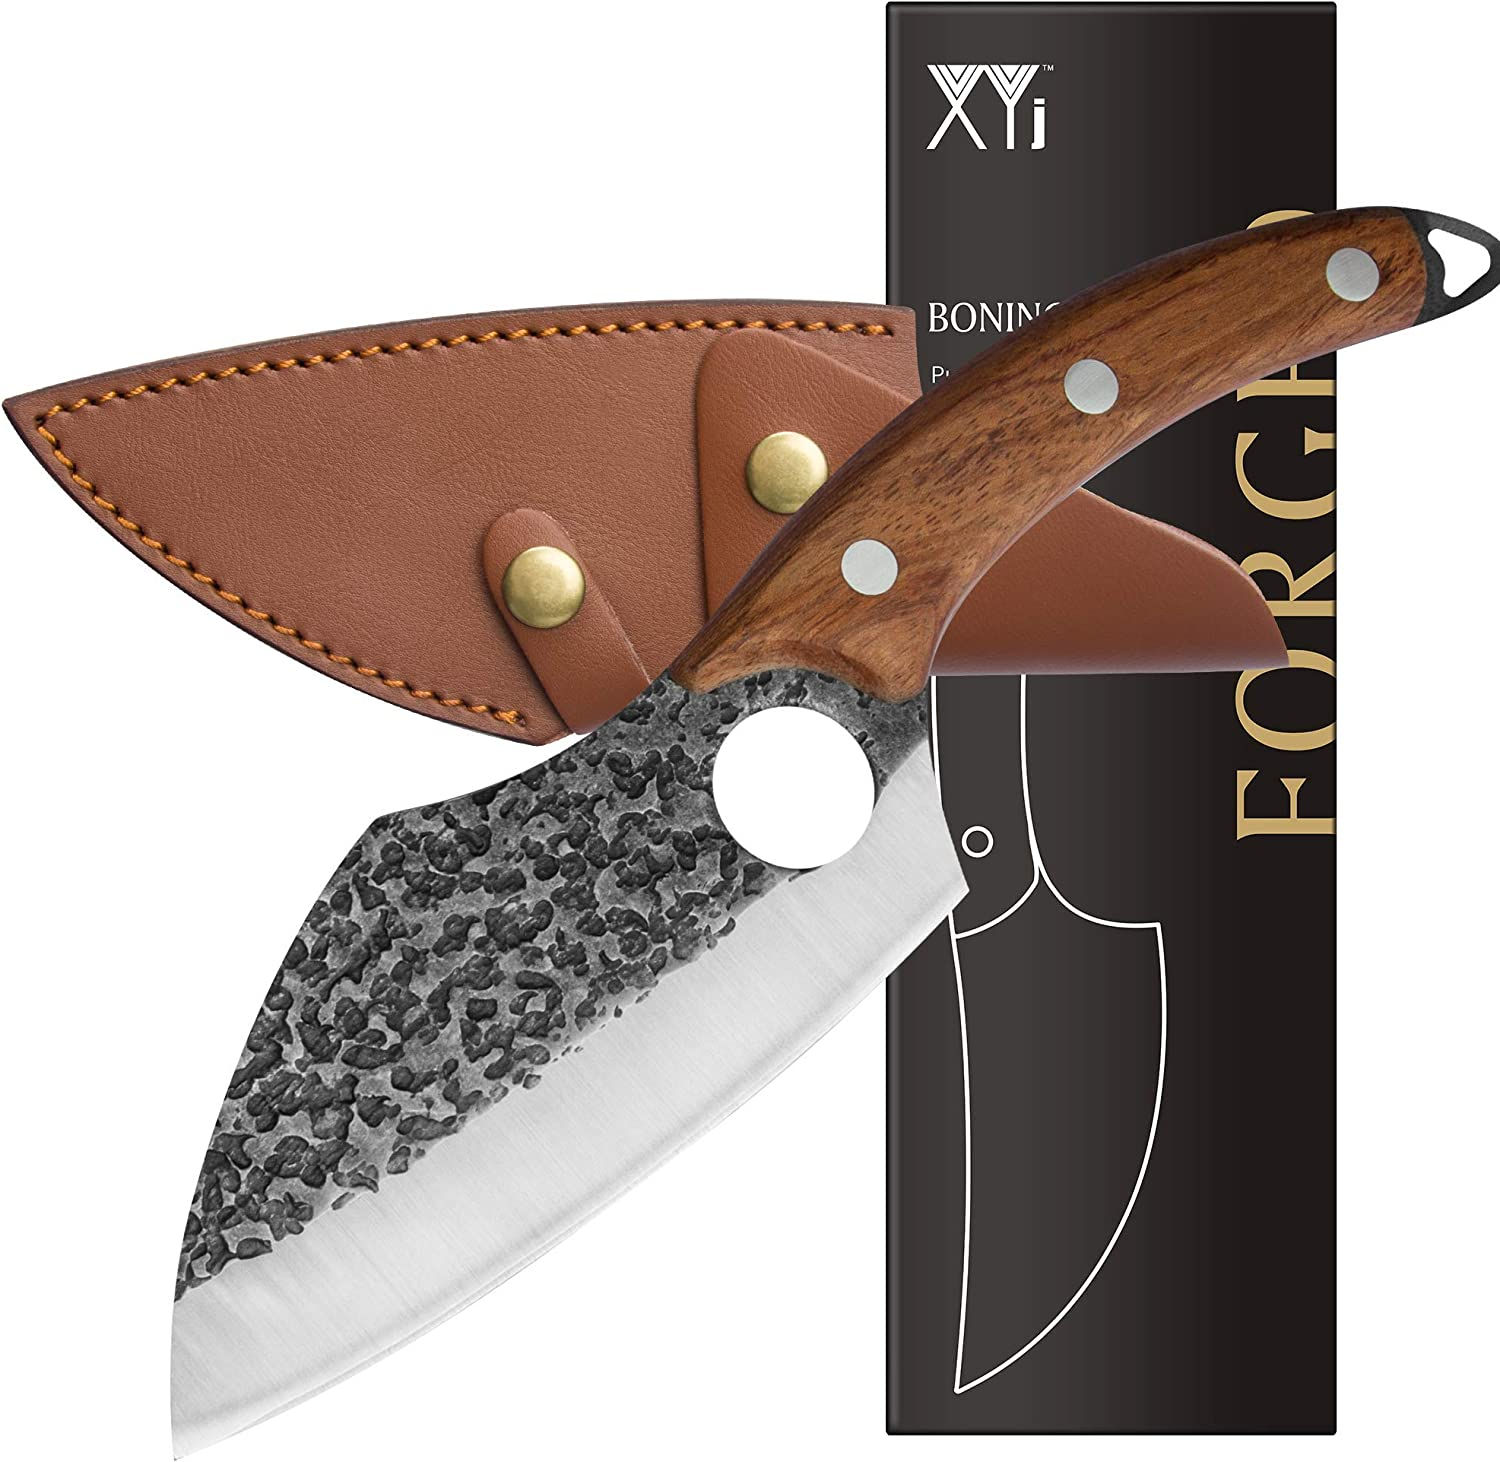 XYJ 6 inch NEW before selling Boning Knife Full Carving Tang Handmade Max 70% OFF Forging